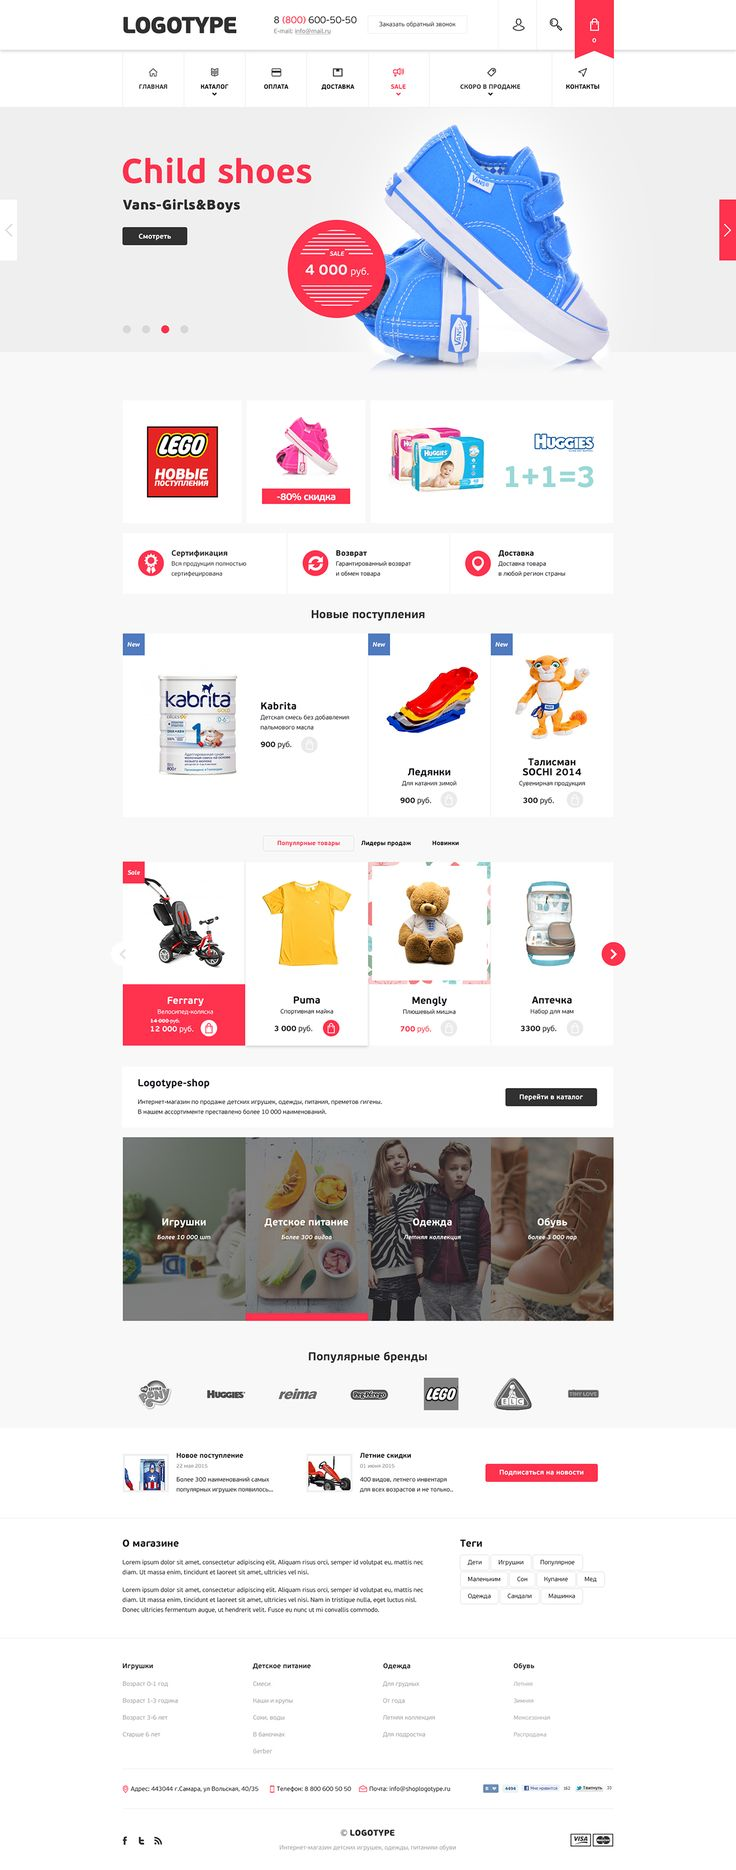 How to design a website for kids - Ecommerce Theme On Behance Love A Good Success Story Learn How I Went From Zero To 1 Million In Sales In 5 Months With An E Commerce Store